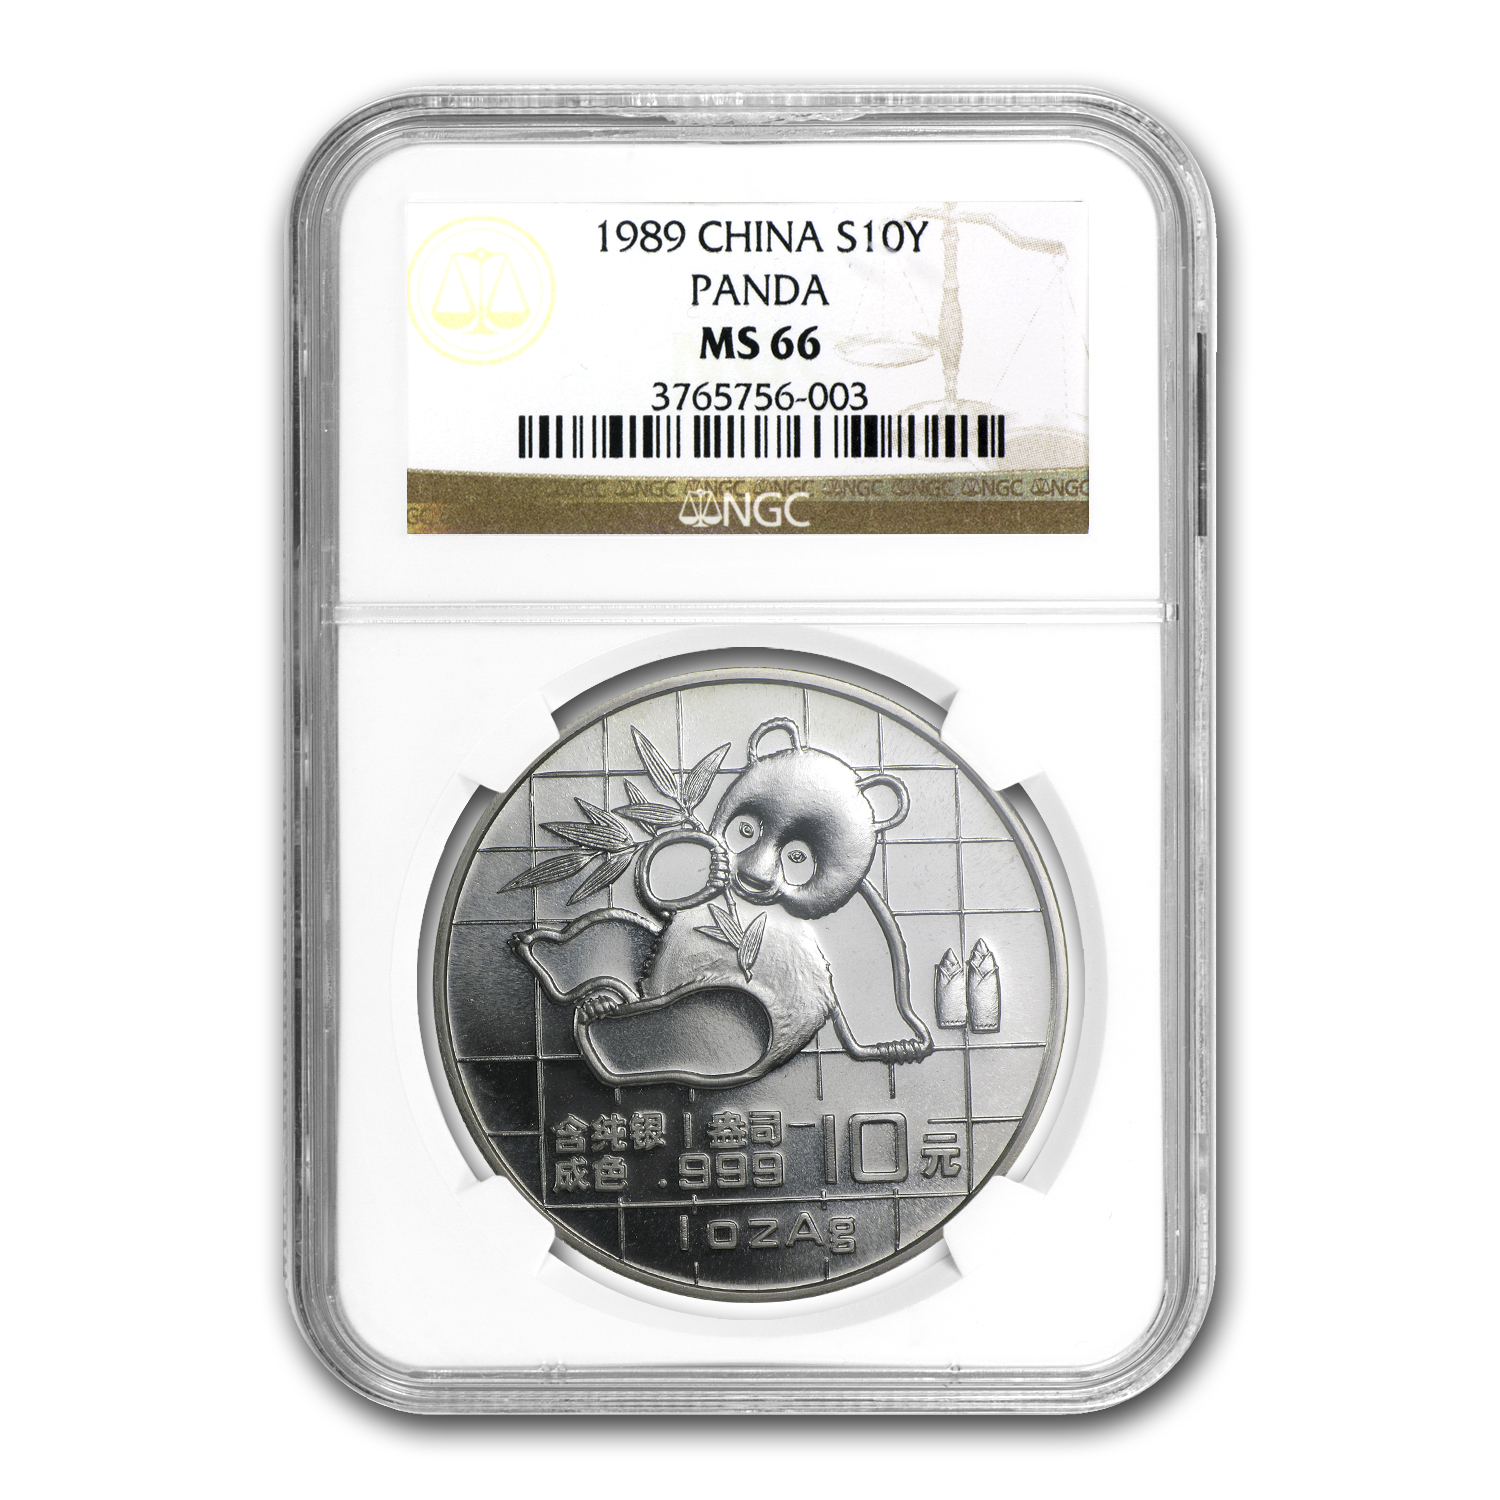 1989 1 oz Silver Chinese Panda - MS-66 NGC